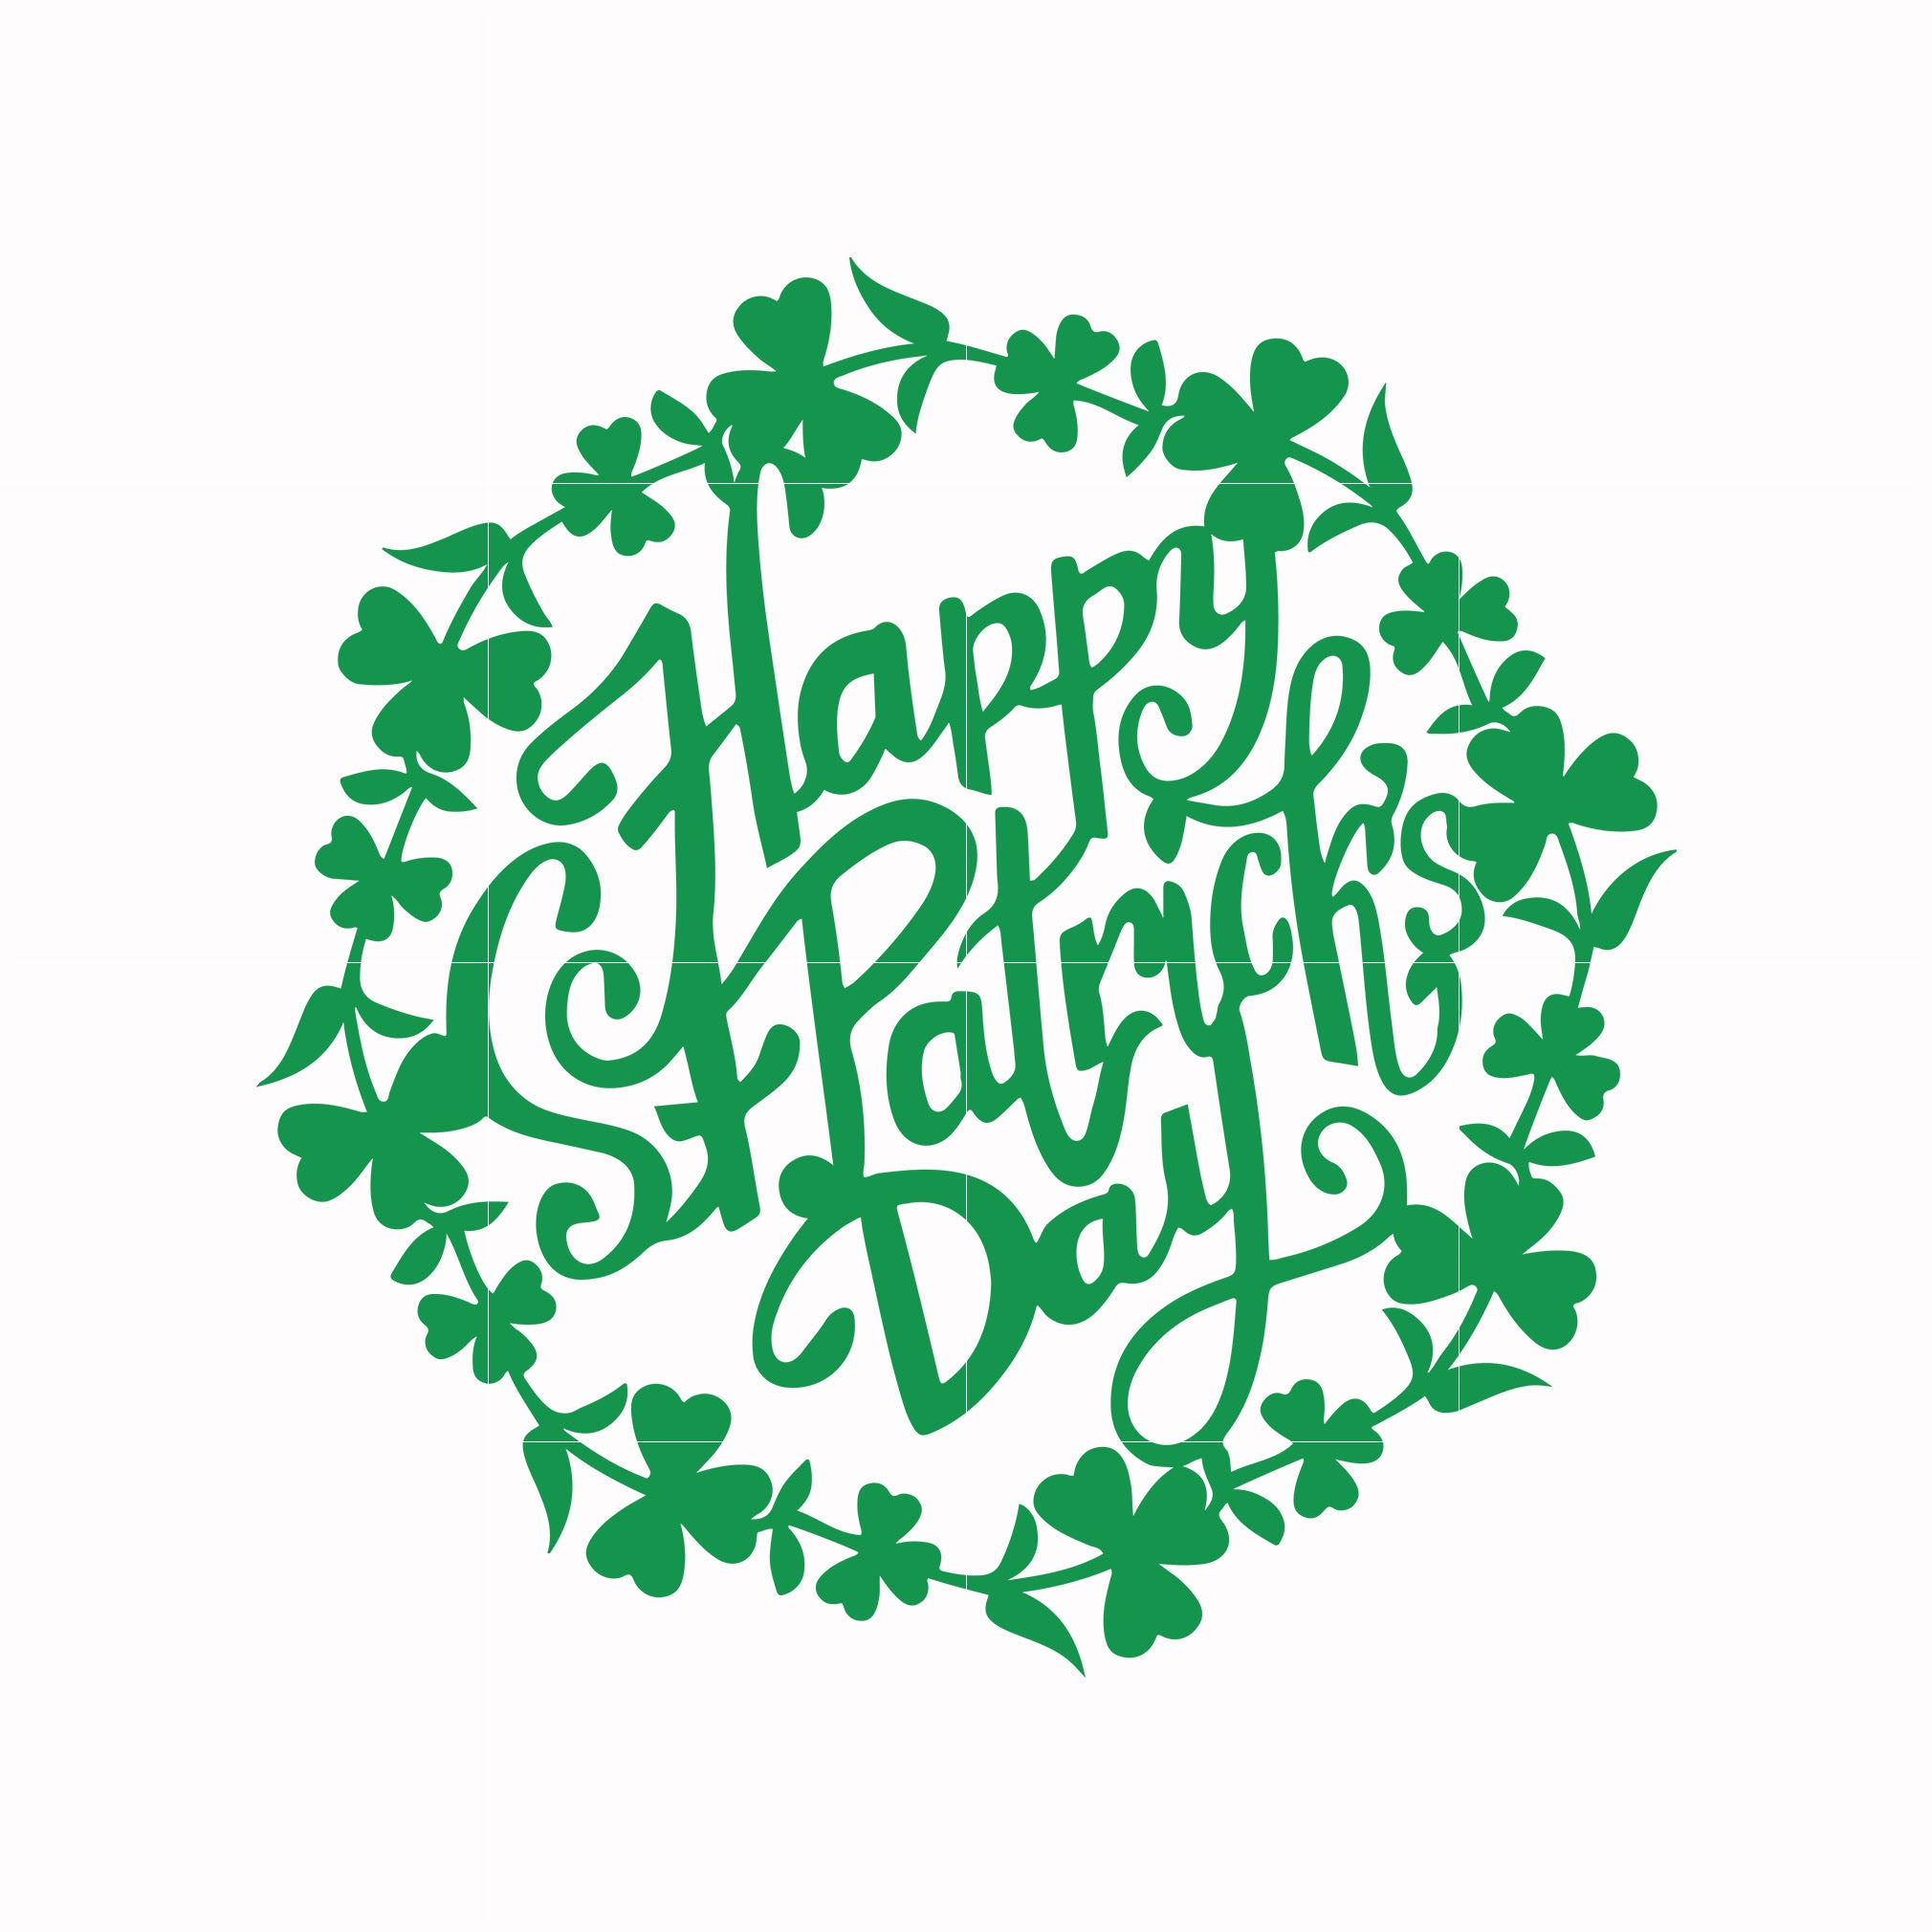 Happy st patrick day, shamrock svg, st patrick day svg, leprechaun svg, patrick svg, leprechaun svg, dxf, eps, png digital file